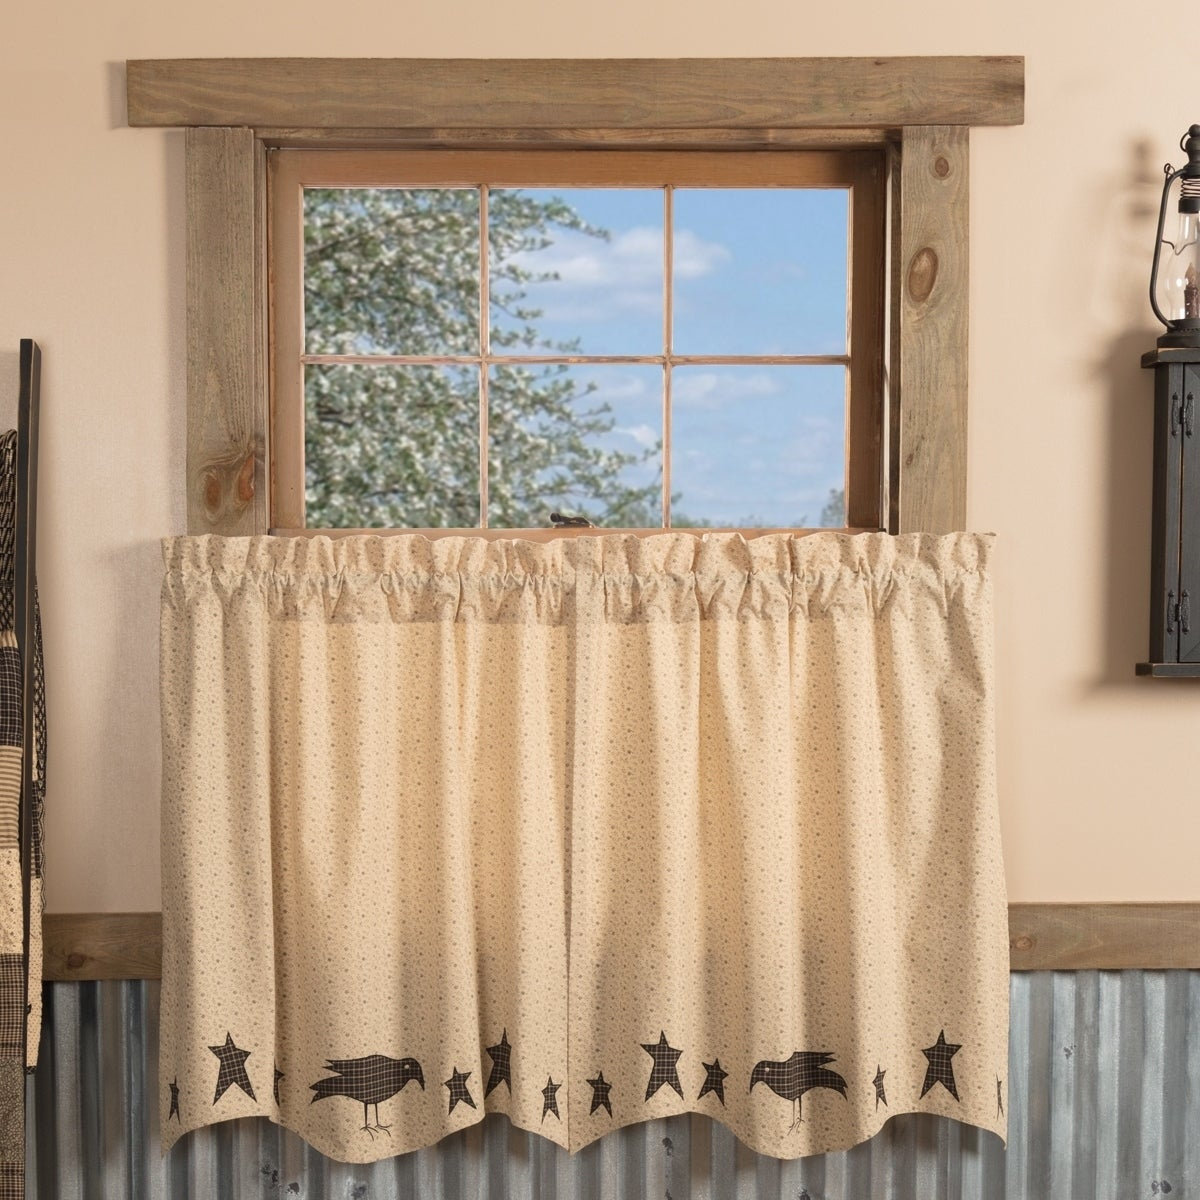 Tan Primitive Kitchen Curtains Vhc Kettle Grove Crow And Star Tier Pair Rod Pocket Cotton Star Appliqued For Forest Valance And Tier Pair Curtains (View 8 of 20)